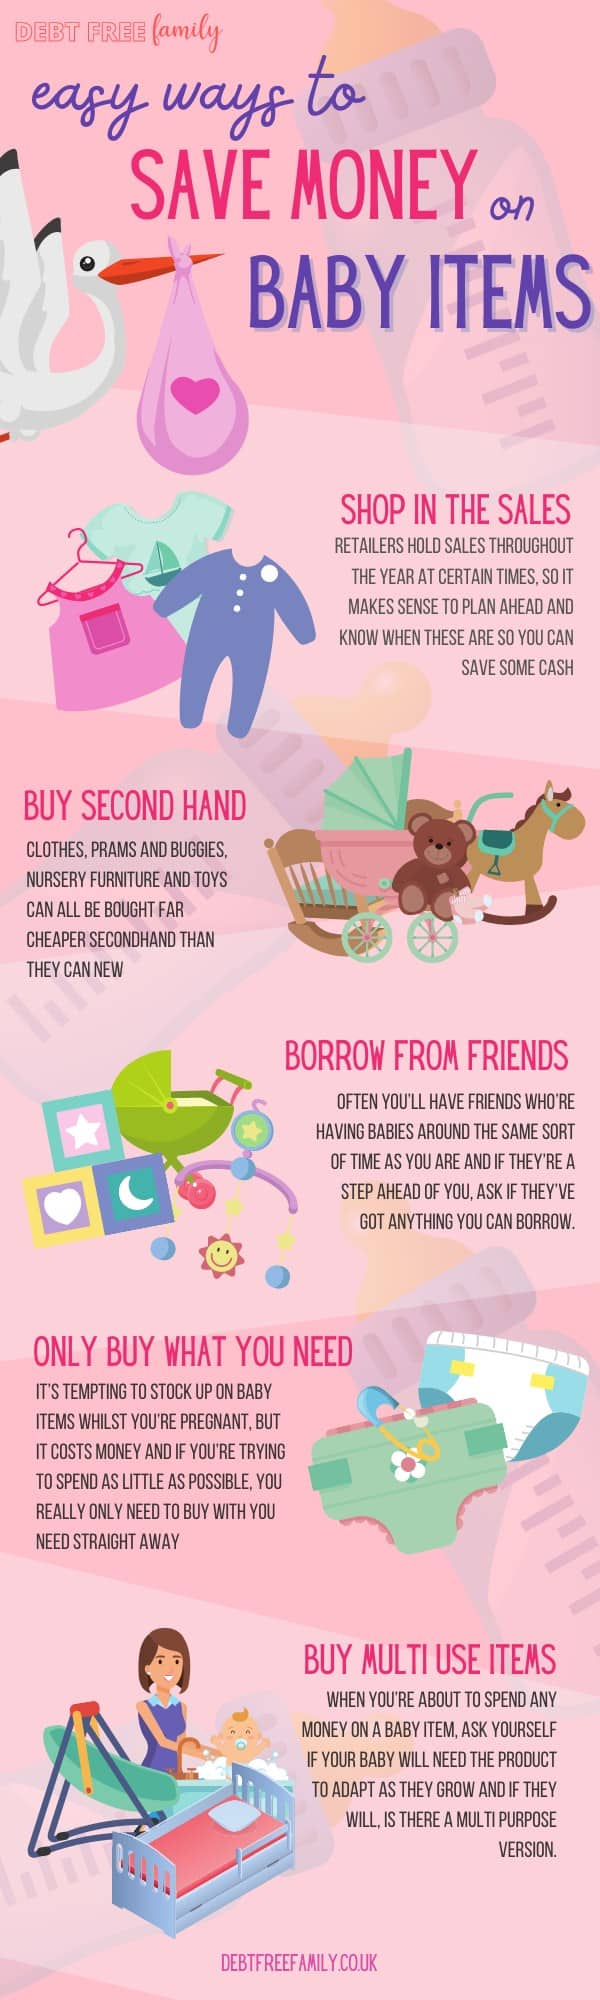 Baby items can be expensive, so SAVE MONEY where you can by using these 5 easy steps and save money on baby items. There's some things you should never buy secondhand but many baby items can be bought preloved, such as cribs, pushchairs and baby clothes. Use store sales ro make saving, borrow from friends and only ever buy what you need right now!